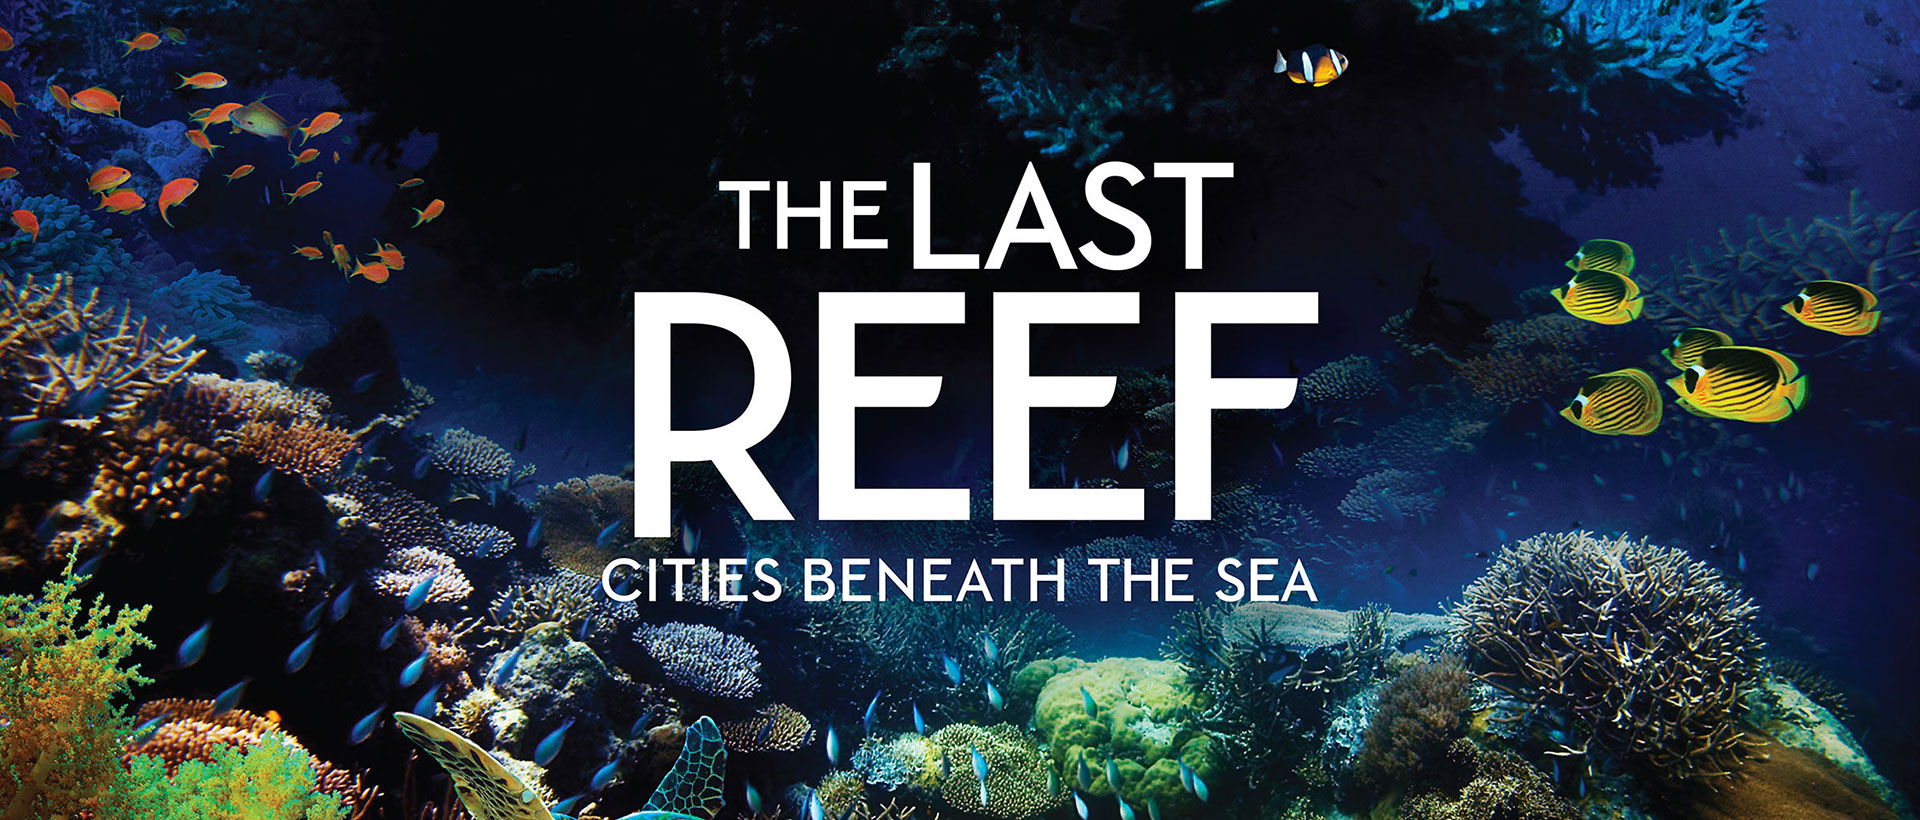 The Last Reef title on top of a photo of tropical reef under water with fish